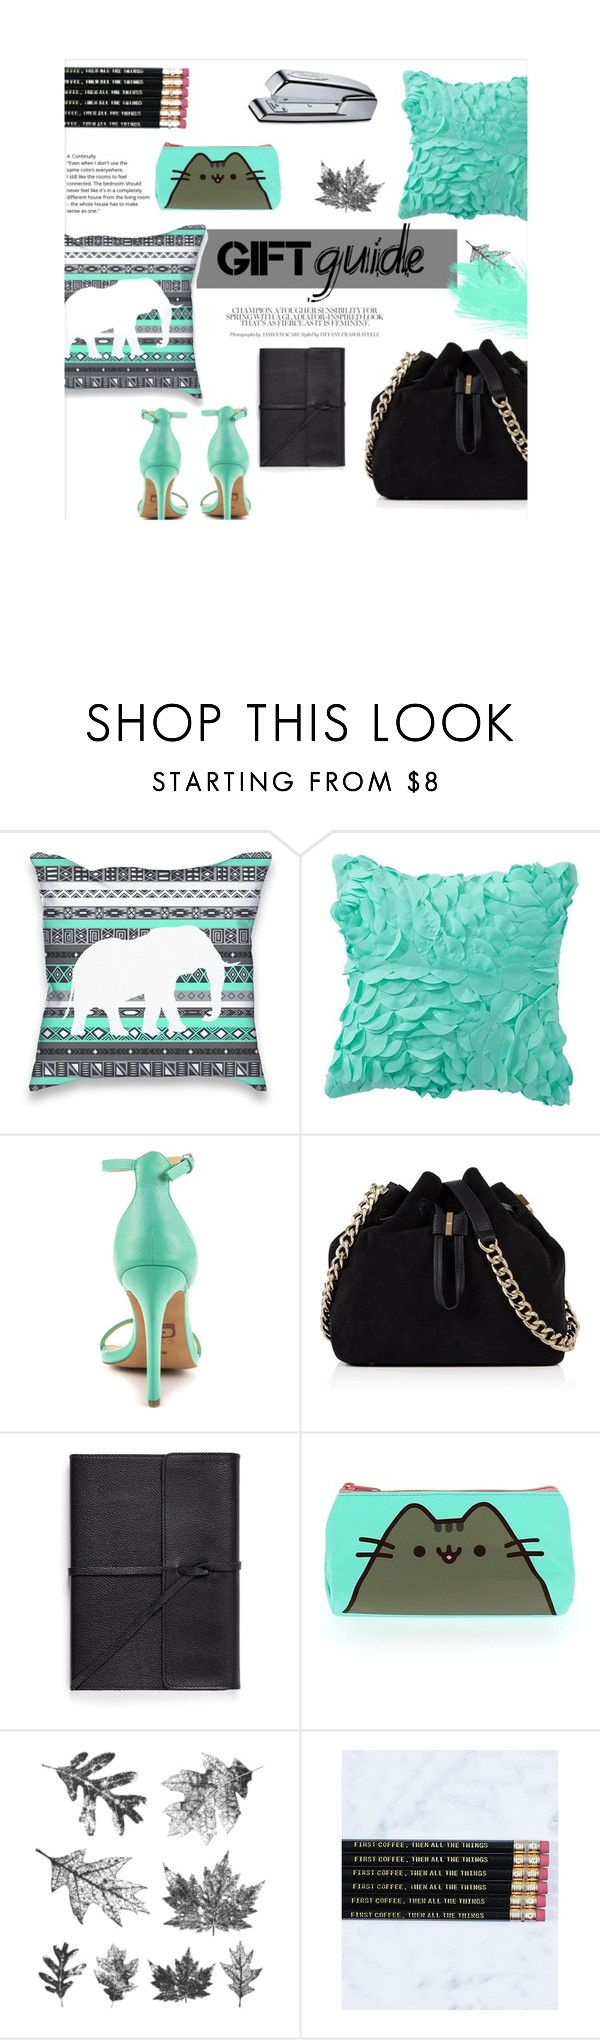 """""""Gift Guide: Work BFF"""" by fashion5eva ❤ liked on Polyvore featuring PBteen, Joe's Jeans, Karen Millen, Bynd Artisan, Pusheen, Tim Holtz, Sweet Water Decor and Swingline"""